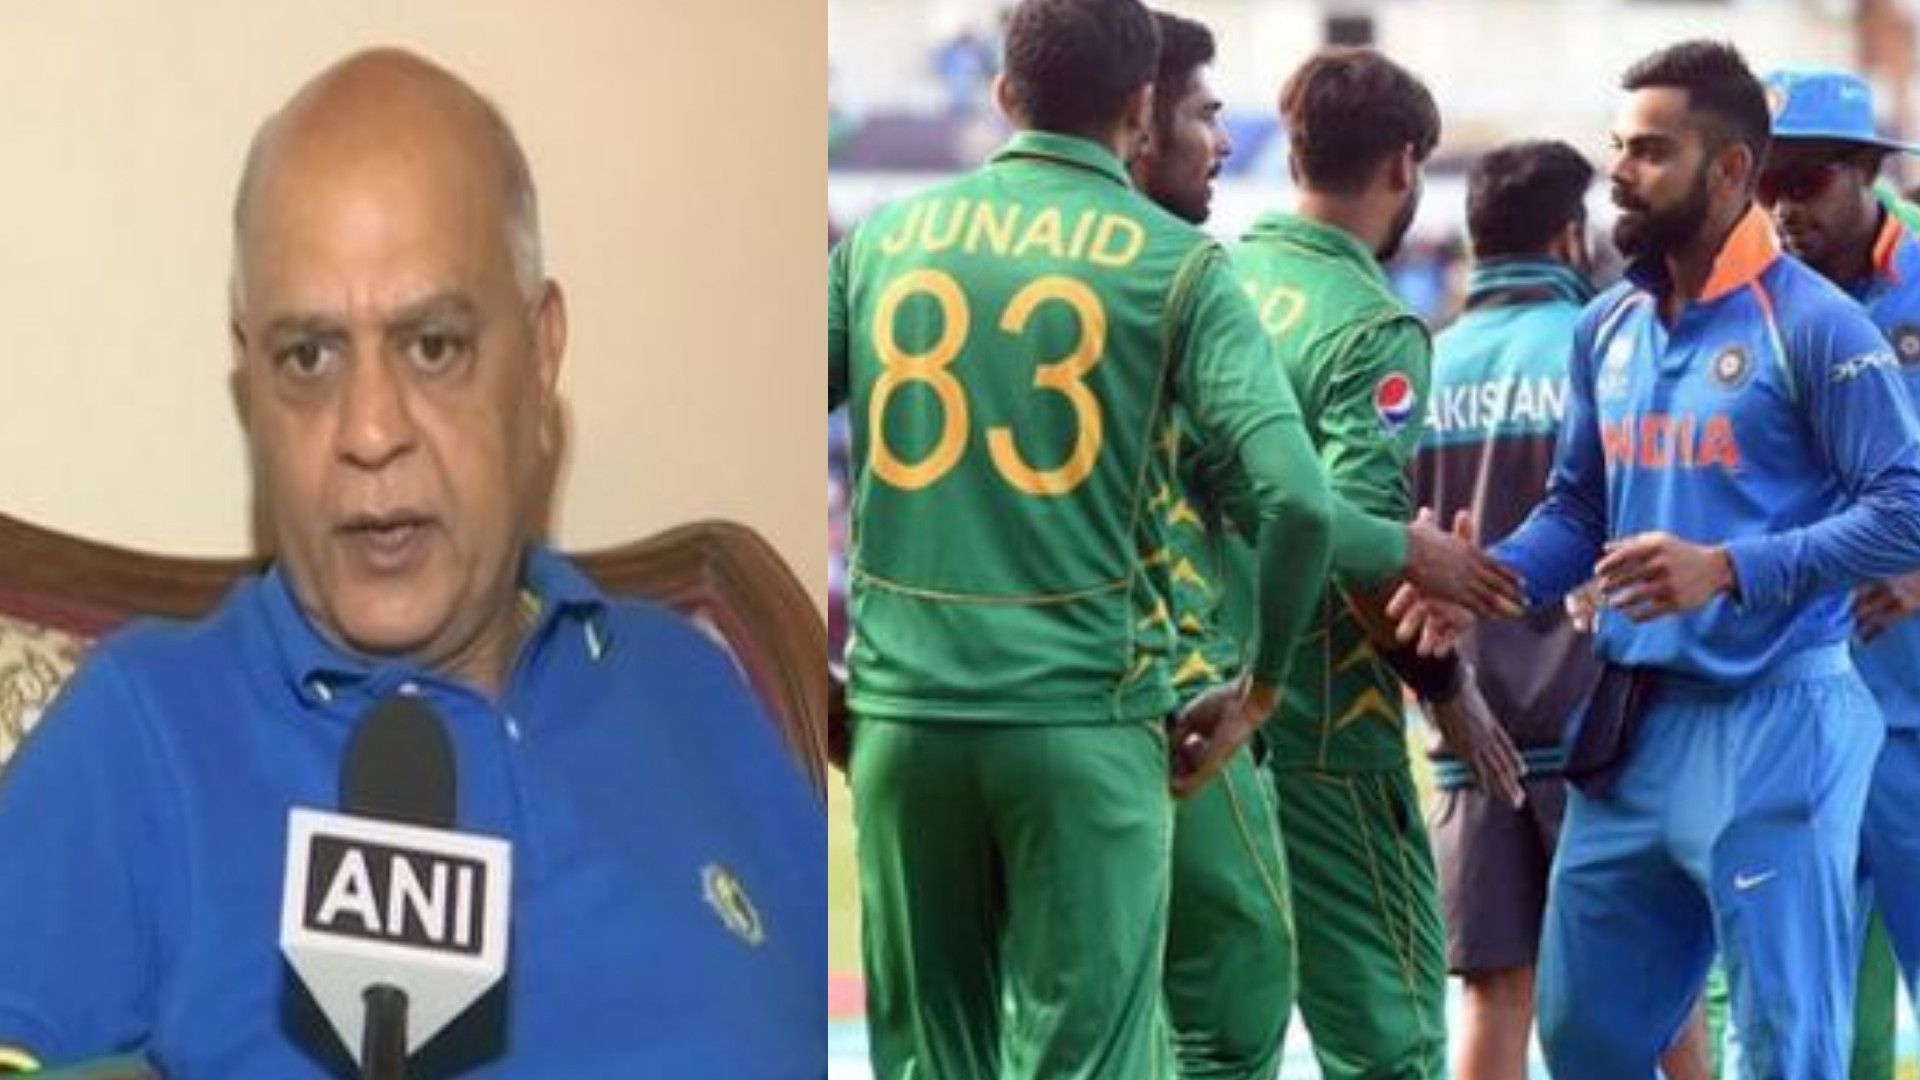 CWC 2019: CCI secretary urges BCCI to boycott match with Pakistan in 2019 World Cup